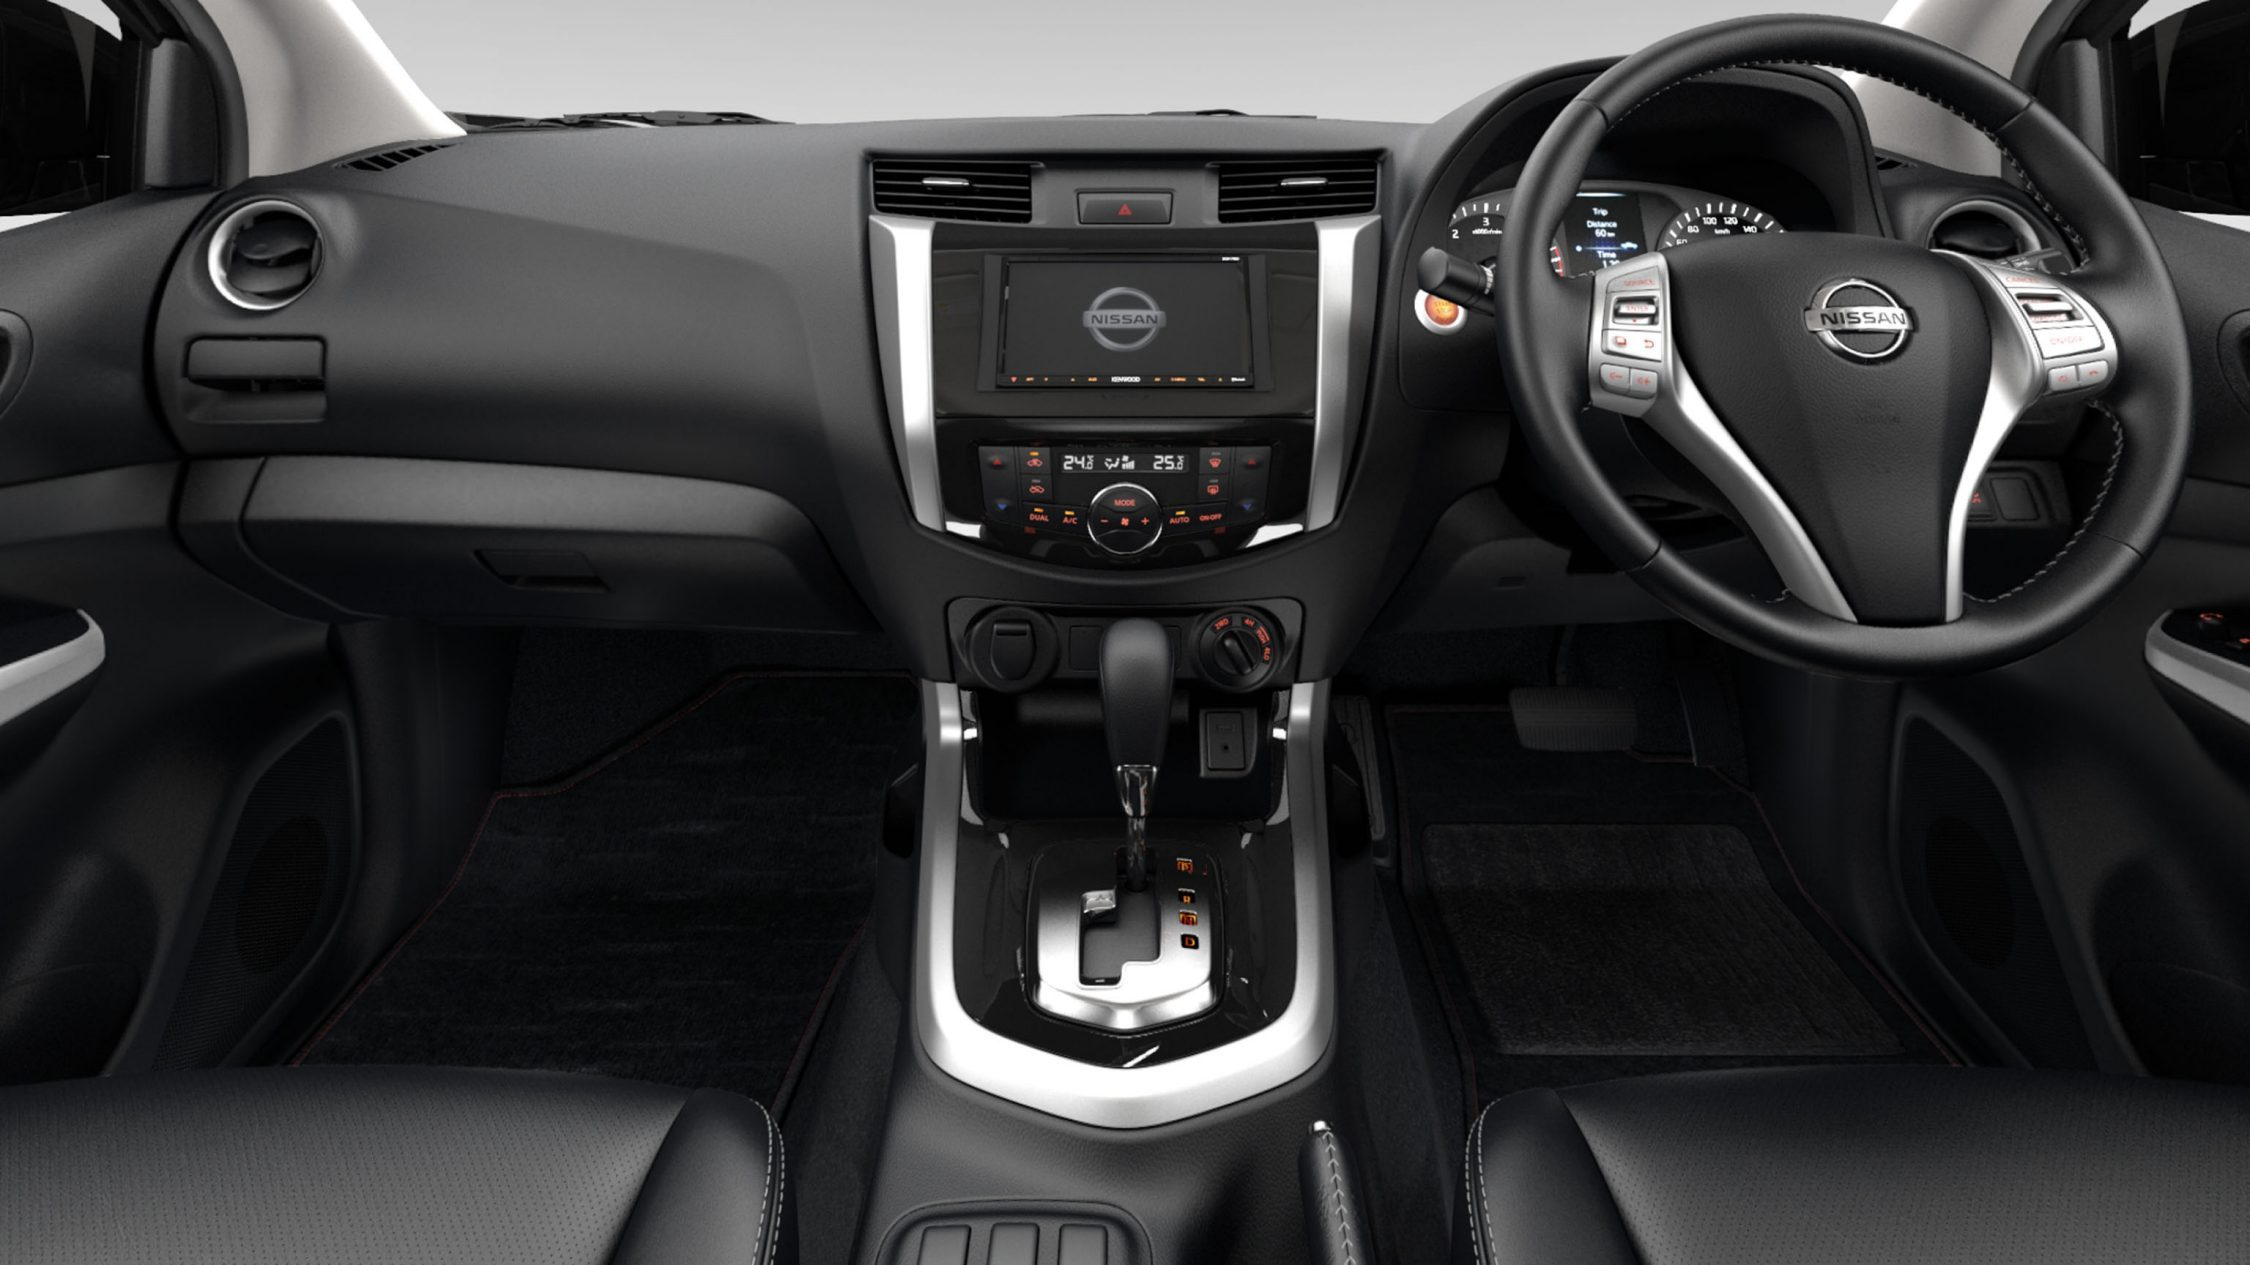 Nissan Navara dashboard detail